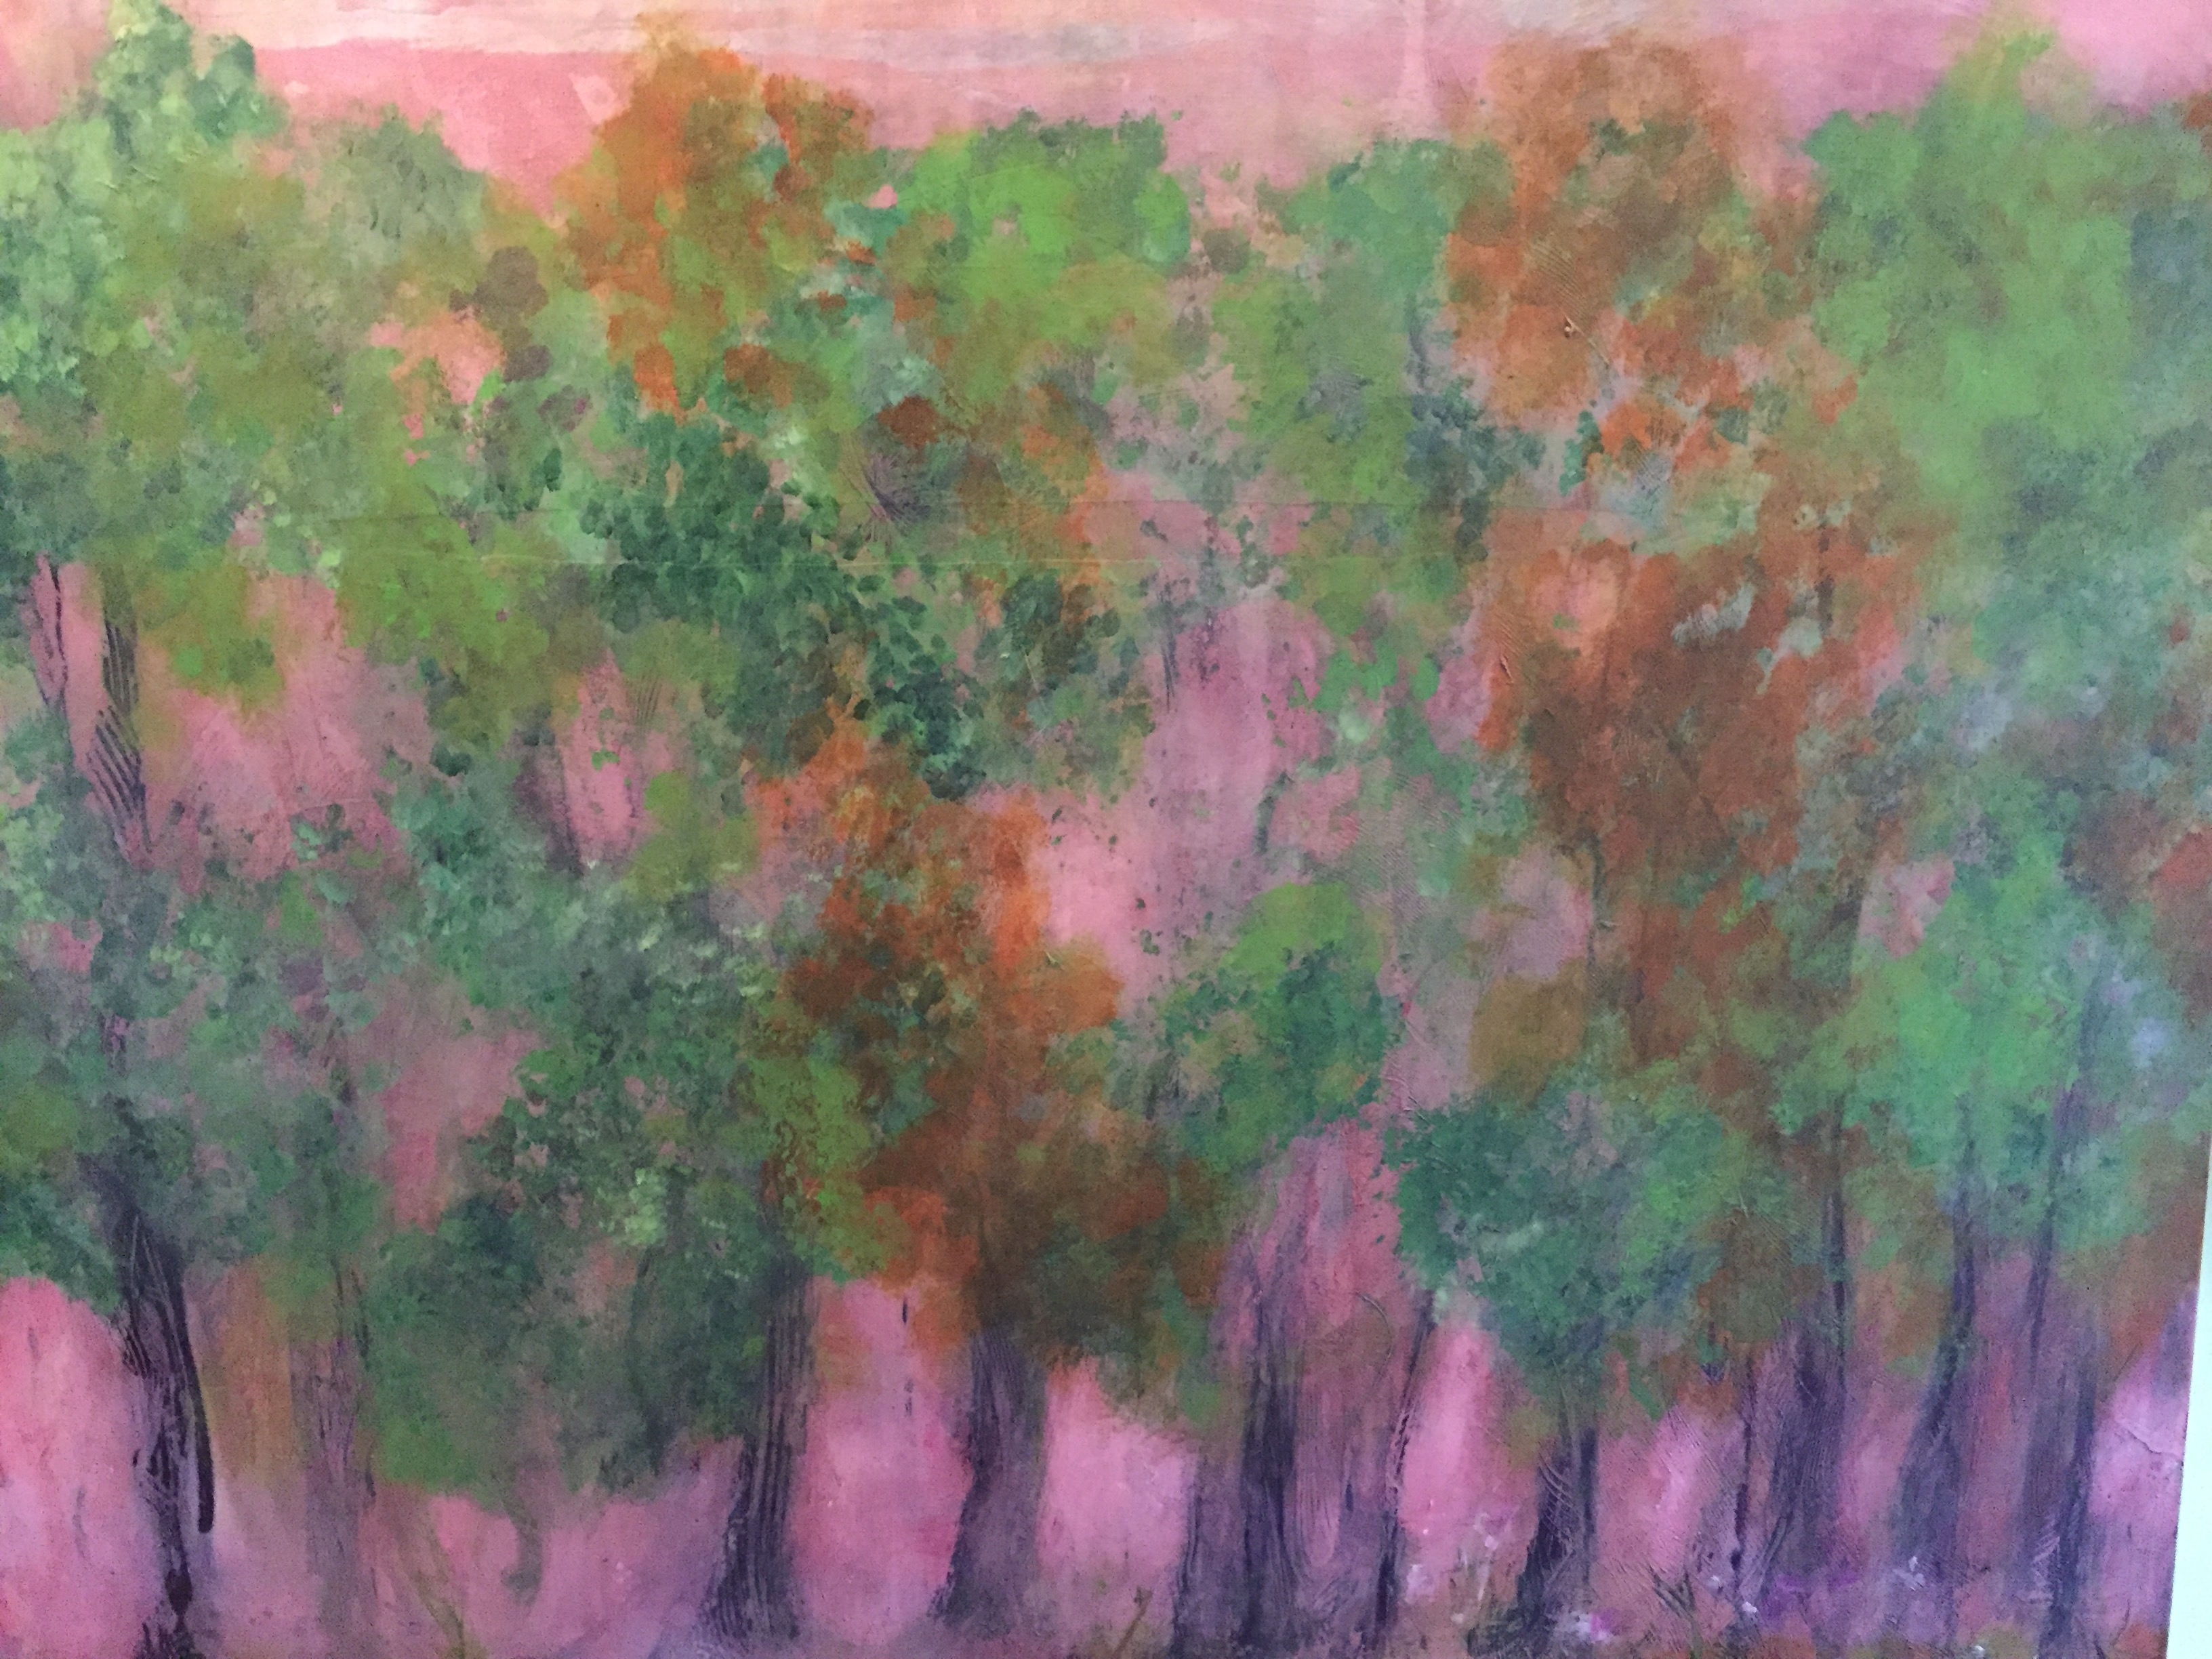 atmospheric, impressionist green trees with mauve flowers/leaves